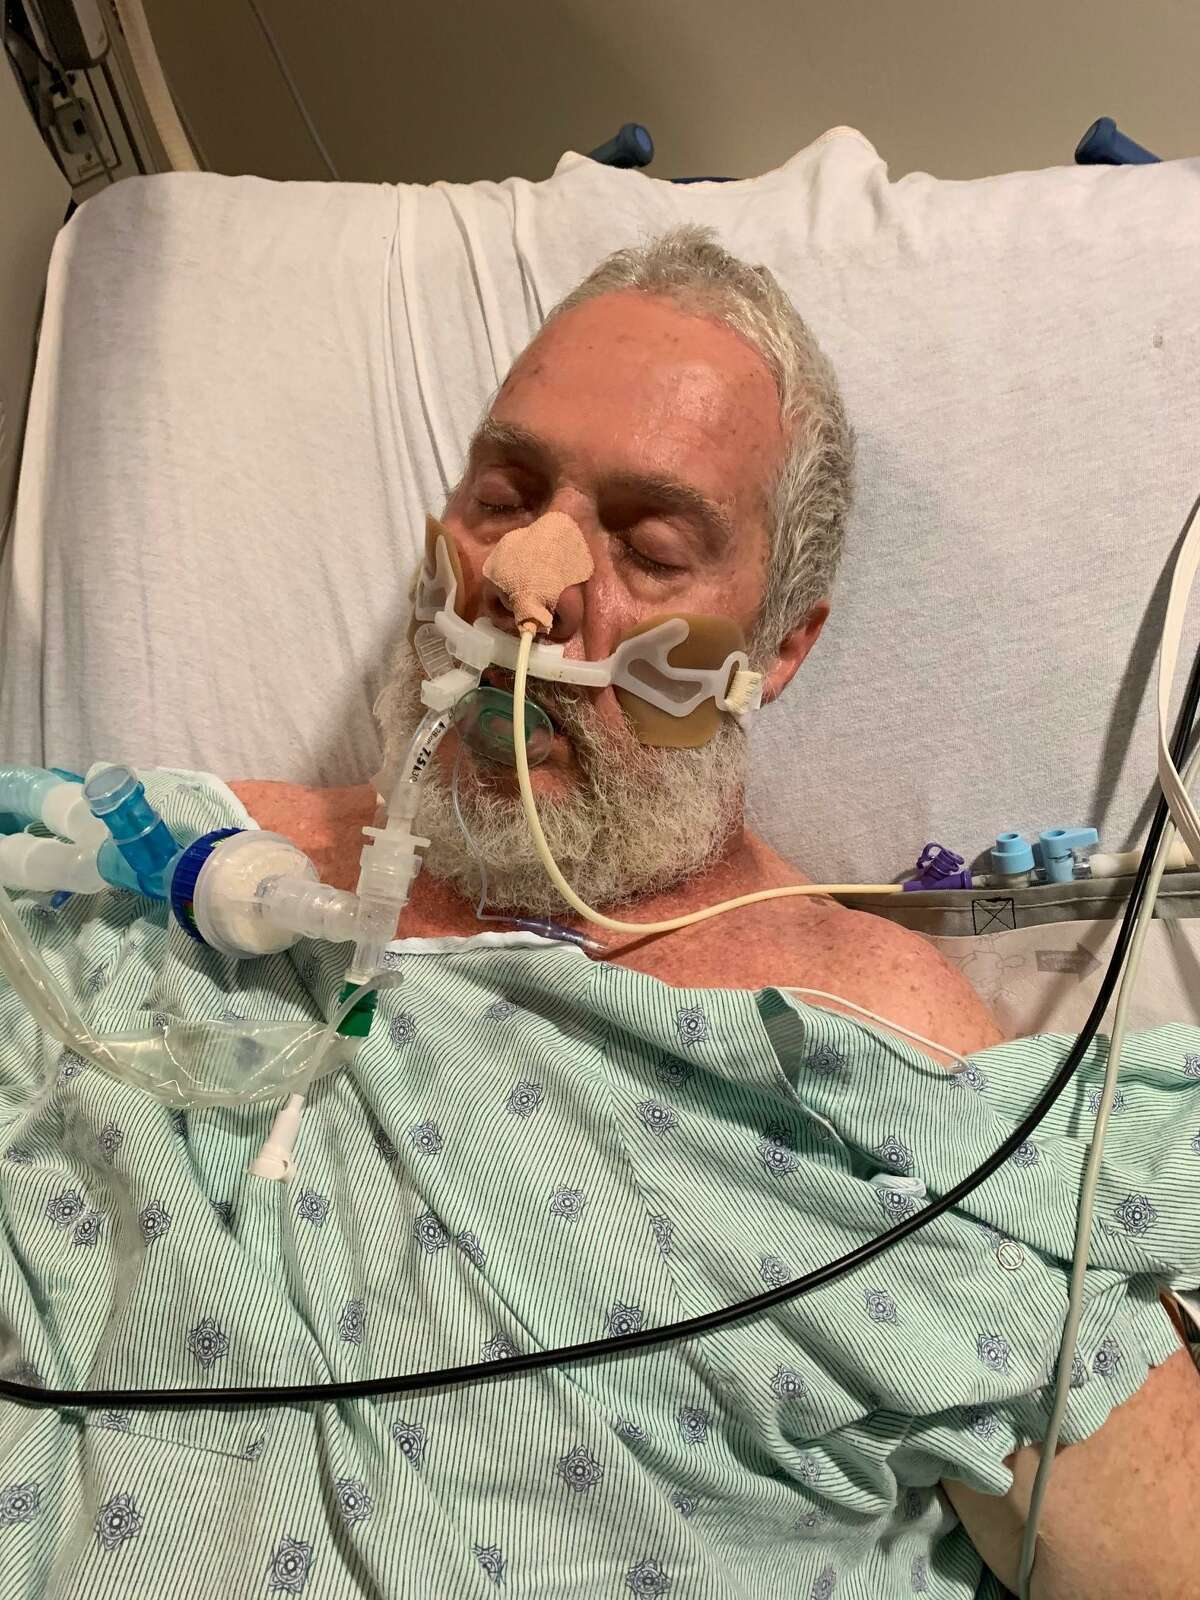 Memorial Herman Memorial City is seeking the identity of this patient. Anyone who knows him should call (281) 242-3000, the hospital said.